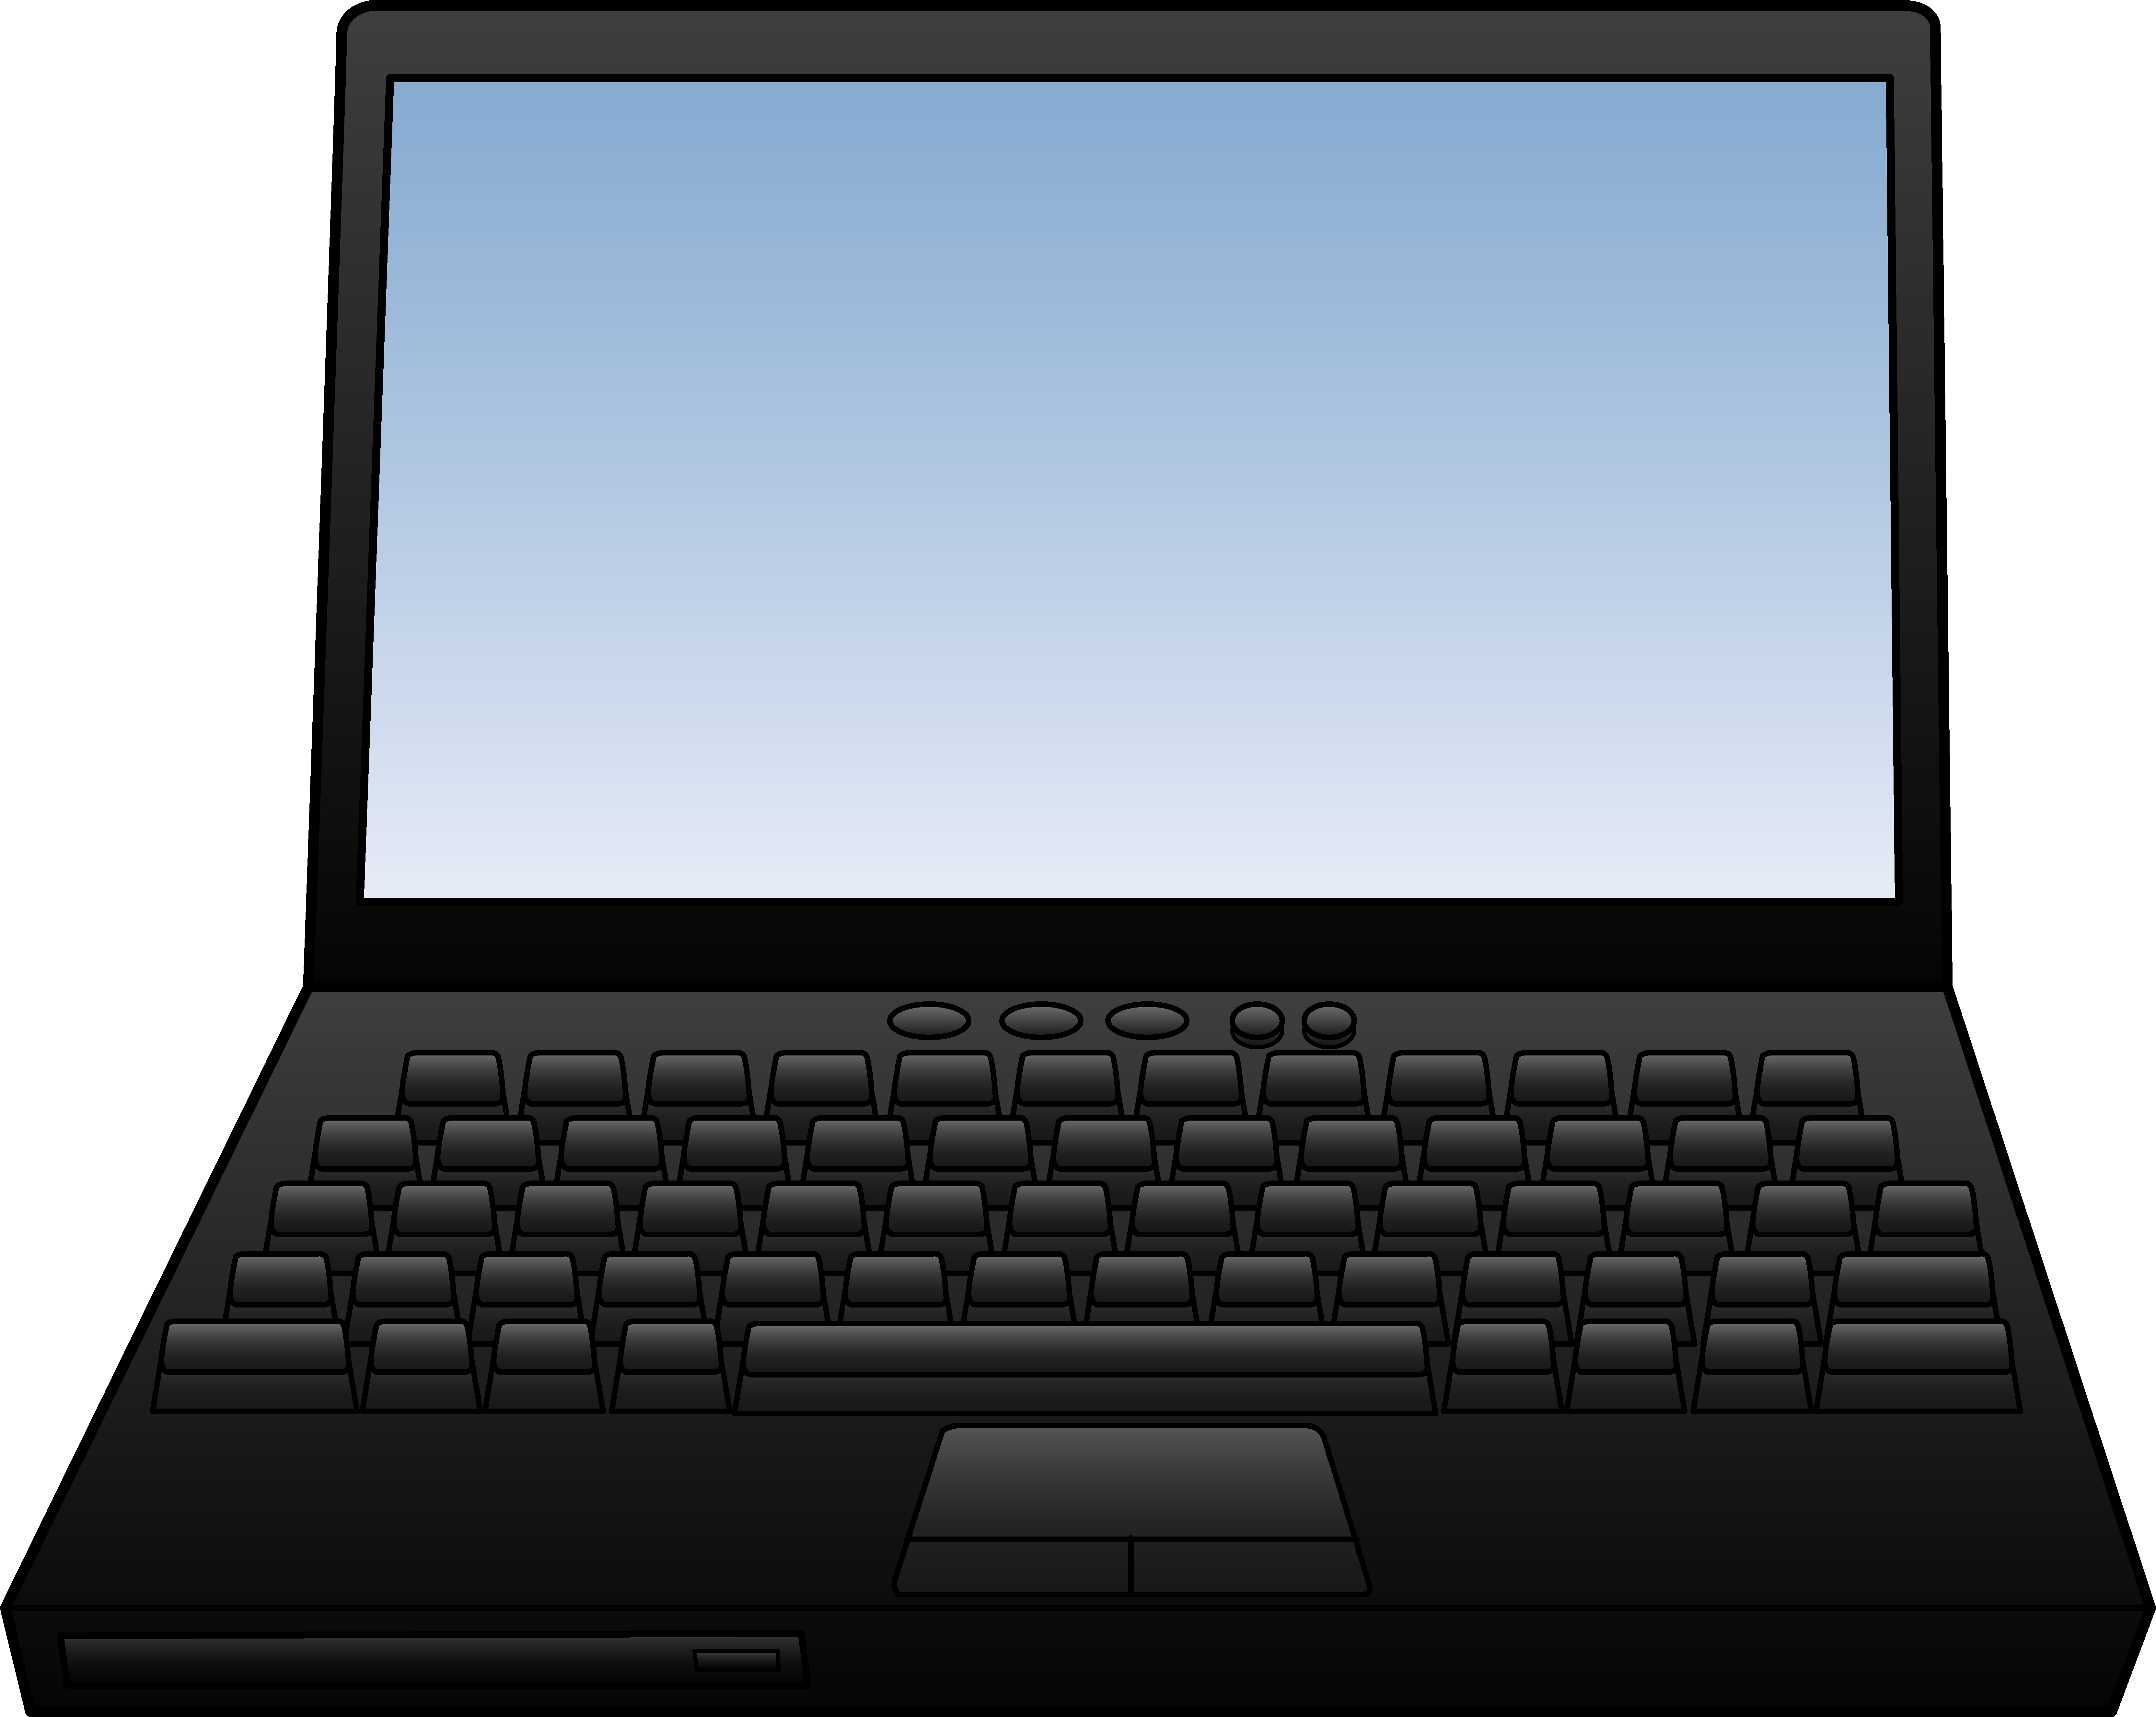 Free Laptop Clipart Free Clipart Graphics Image And Photos